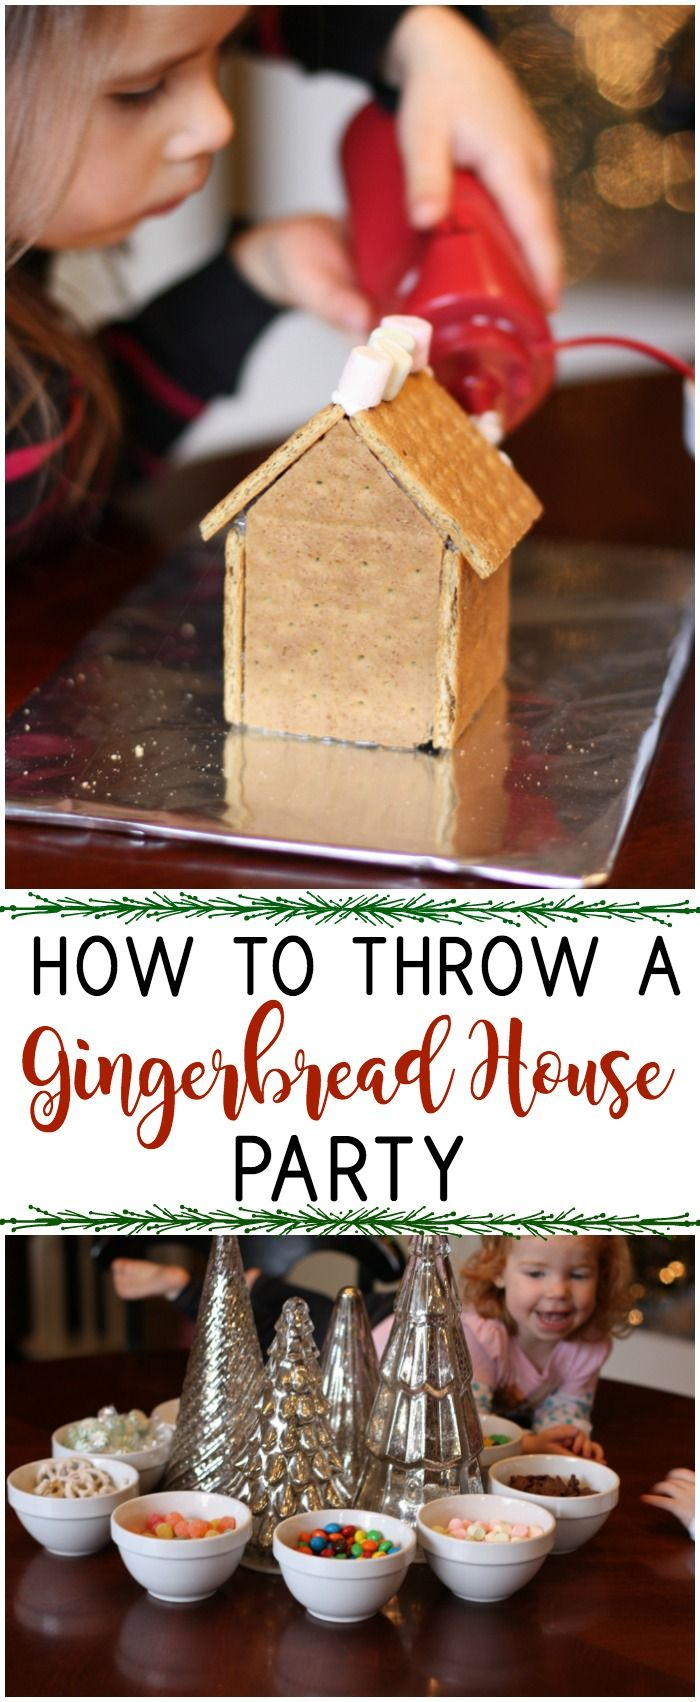 Making gingerbread houses is one of my most favorite traditions. However, there are a lot of little things that go into a gingerbread house party that make them run smoother. Check it all out for a successful gingerbread house party.